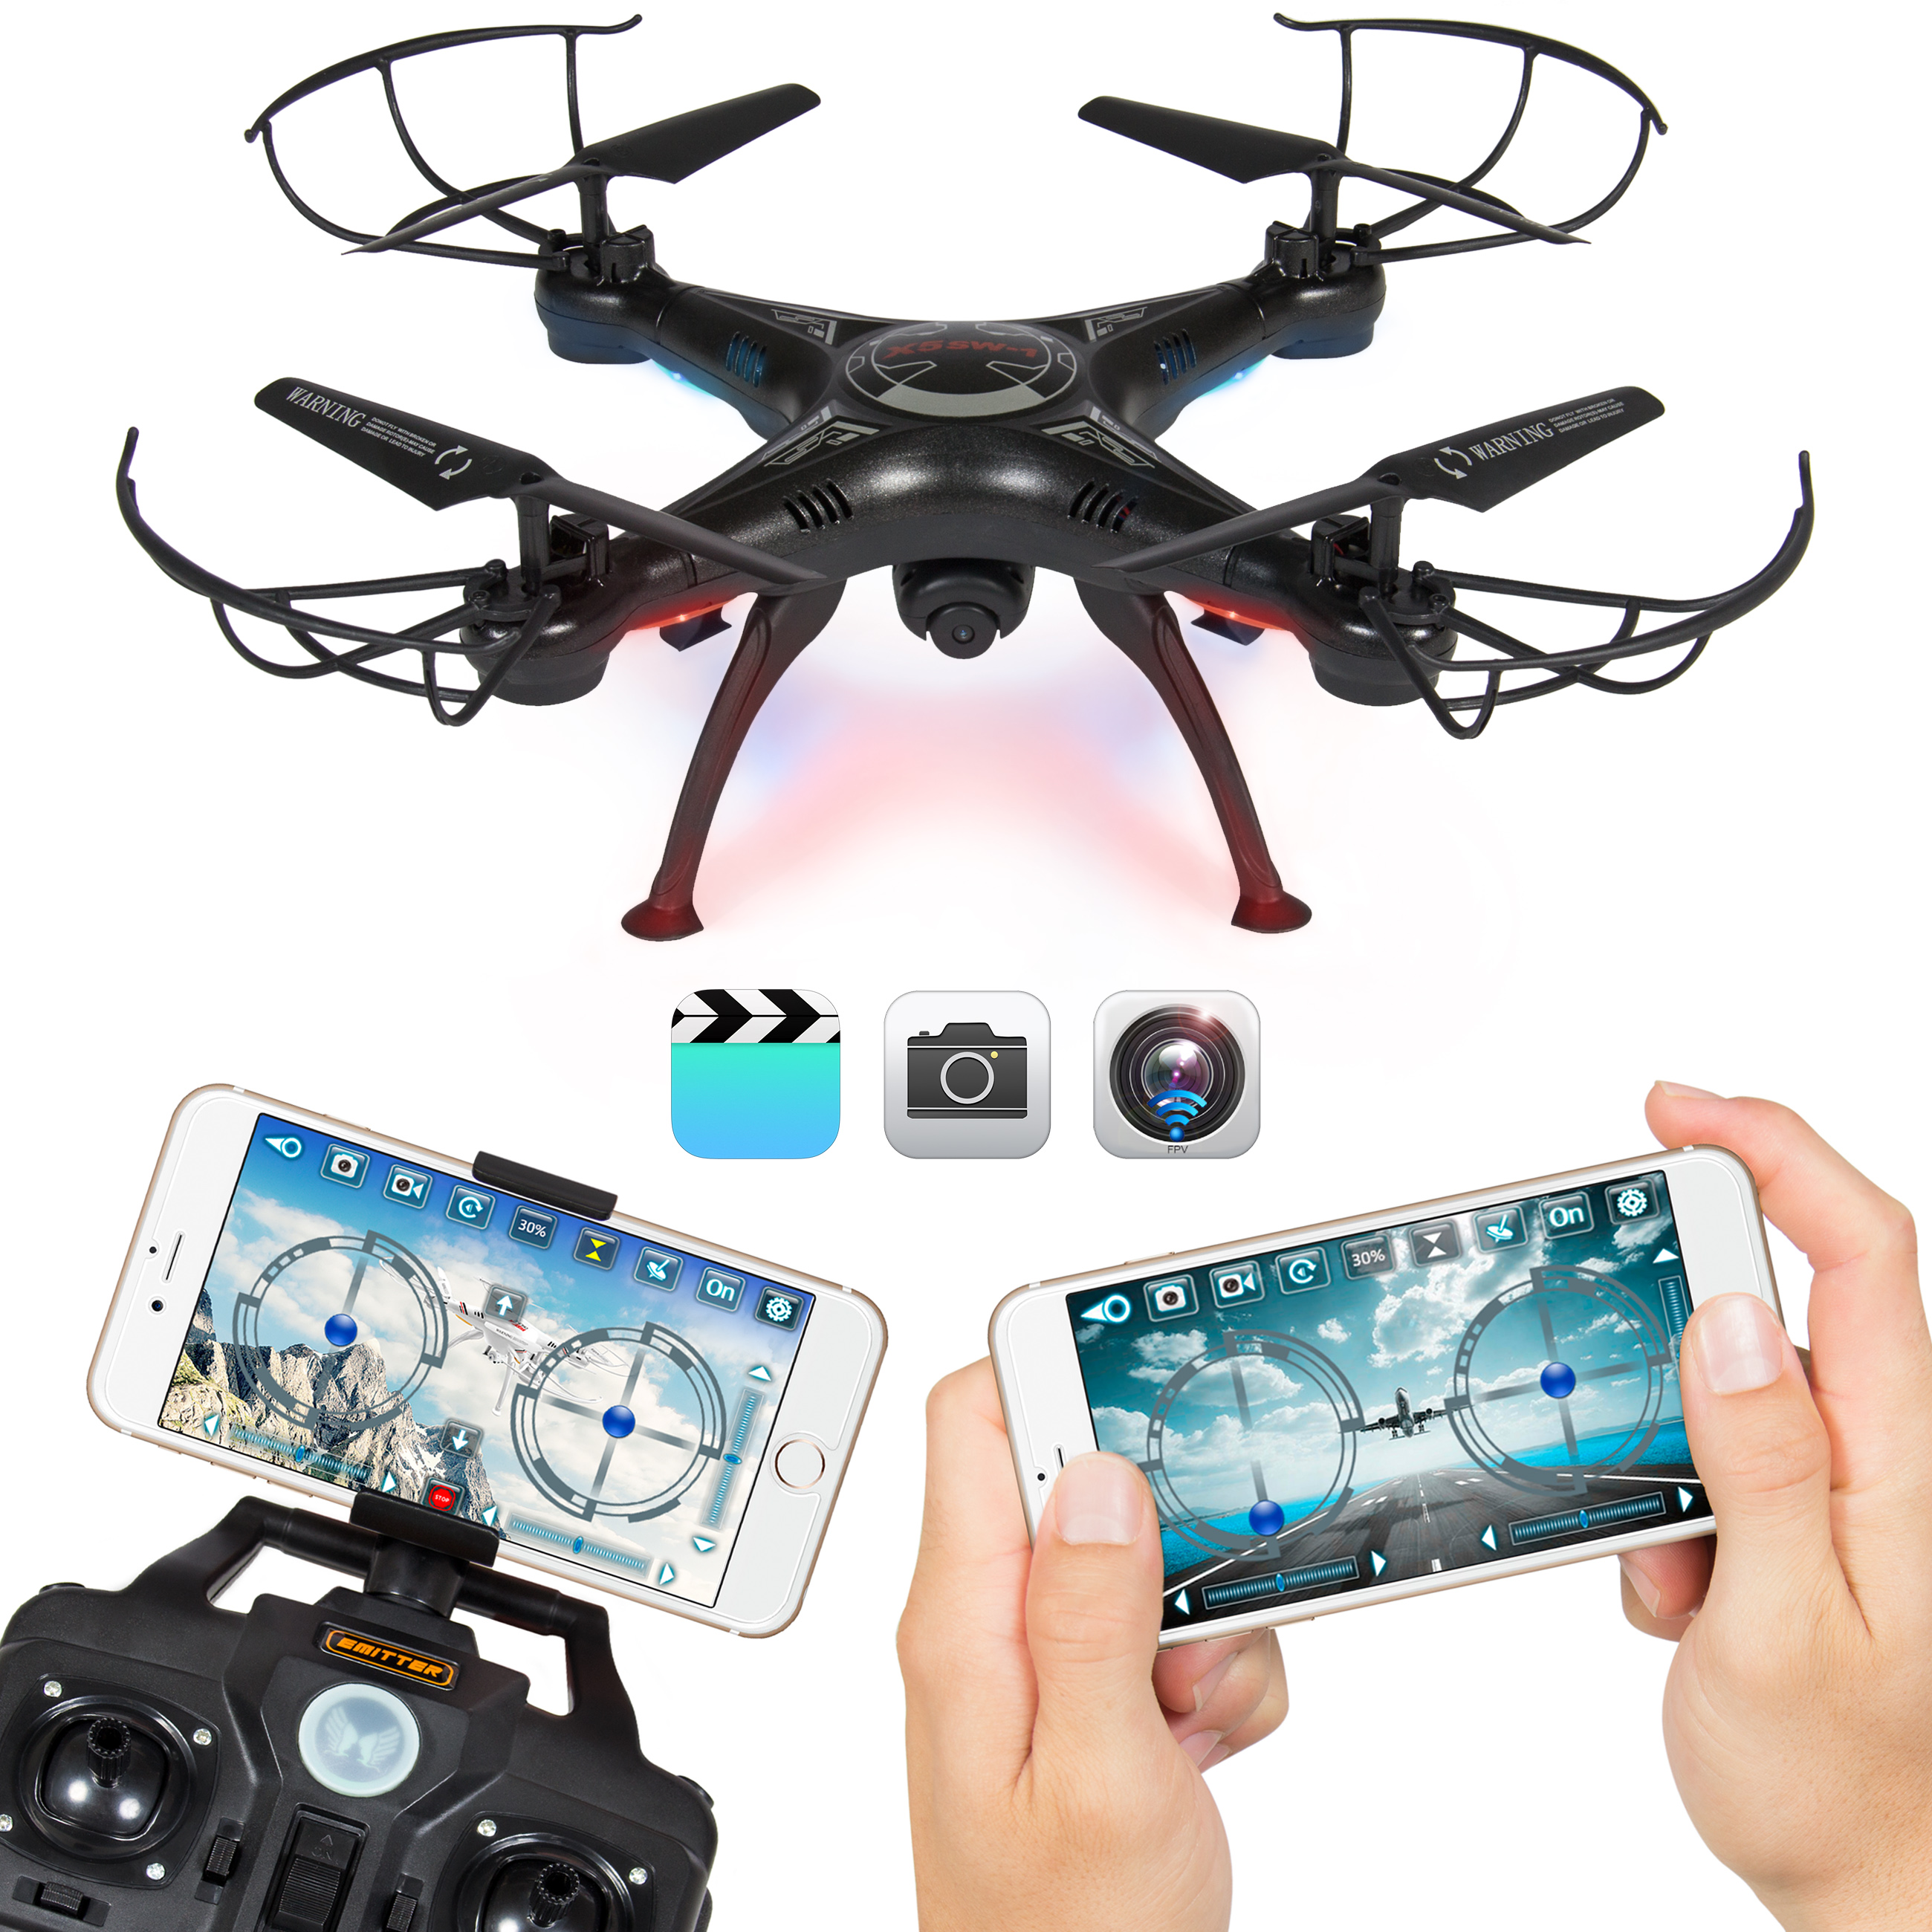 4 Channel 6-Axis Gyro Headless Remote Control Quadcopter FPV RC Drone W/ Wifi Camera For Real Time Video 2 Control Mode